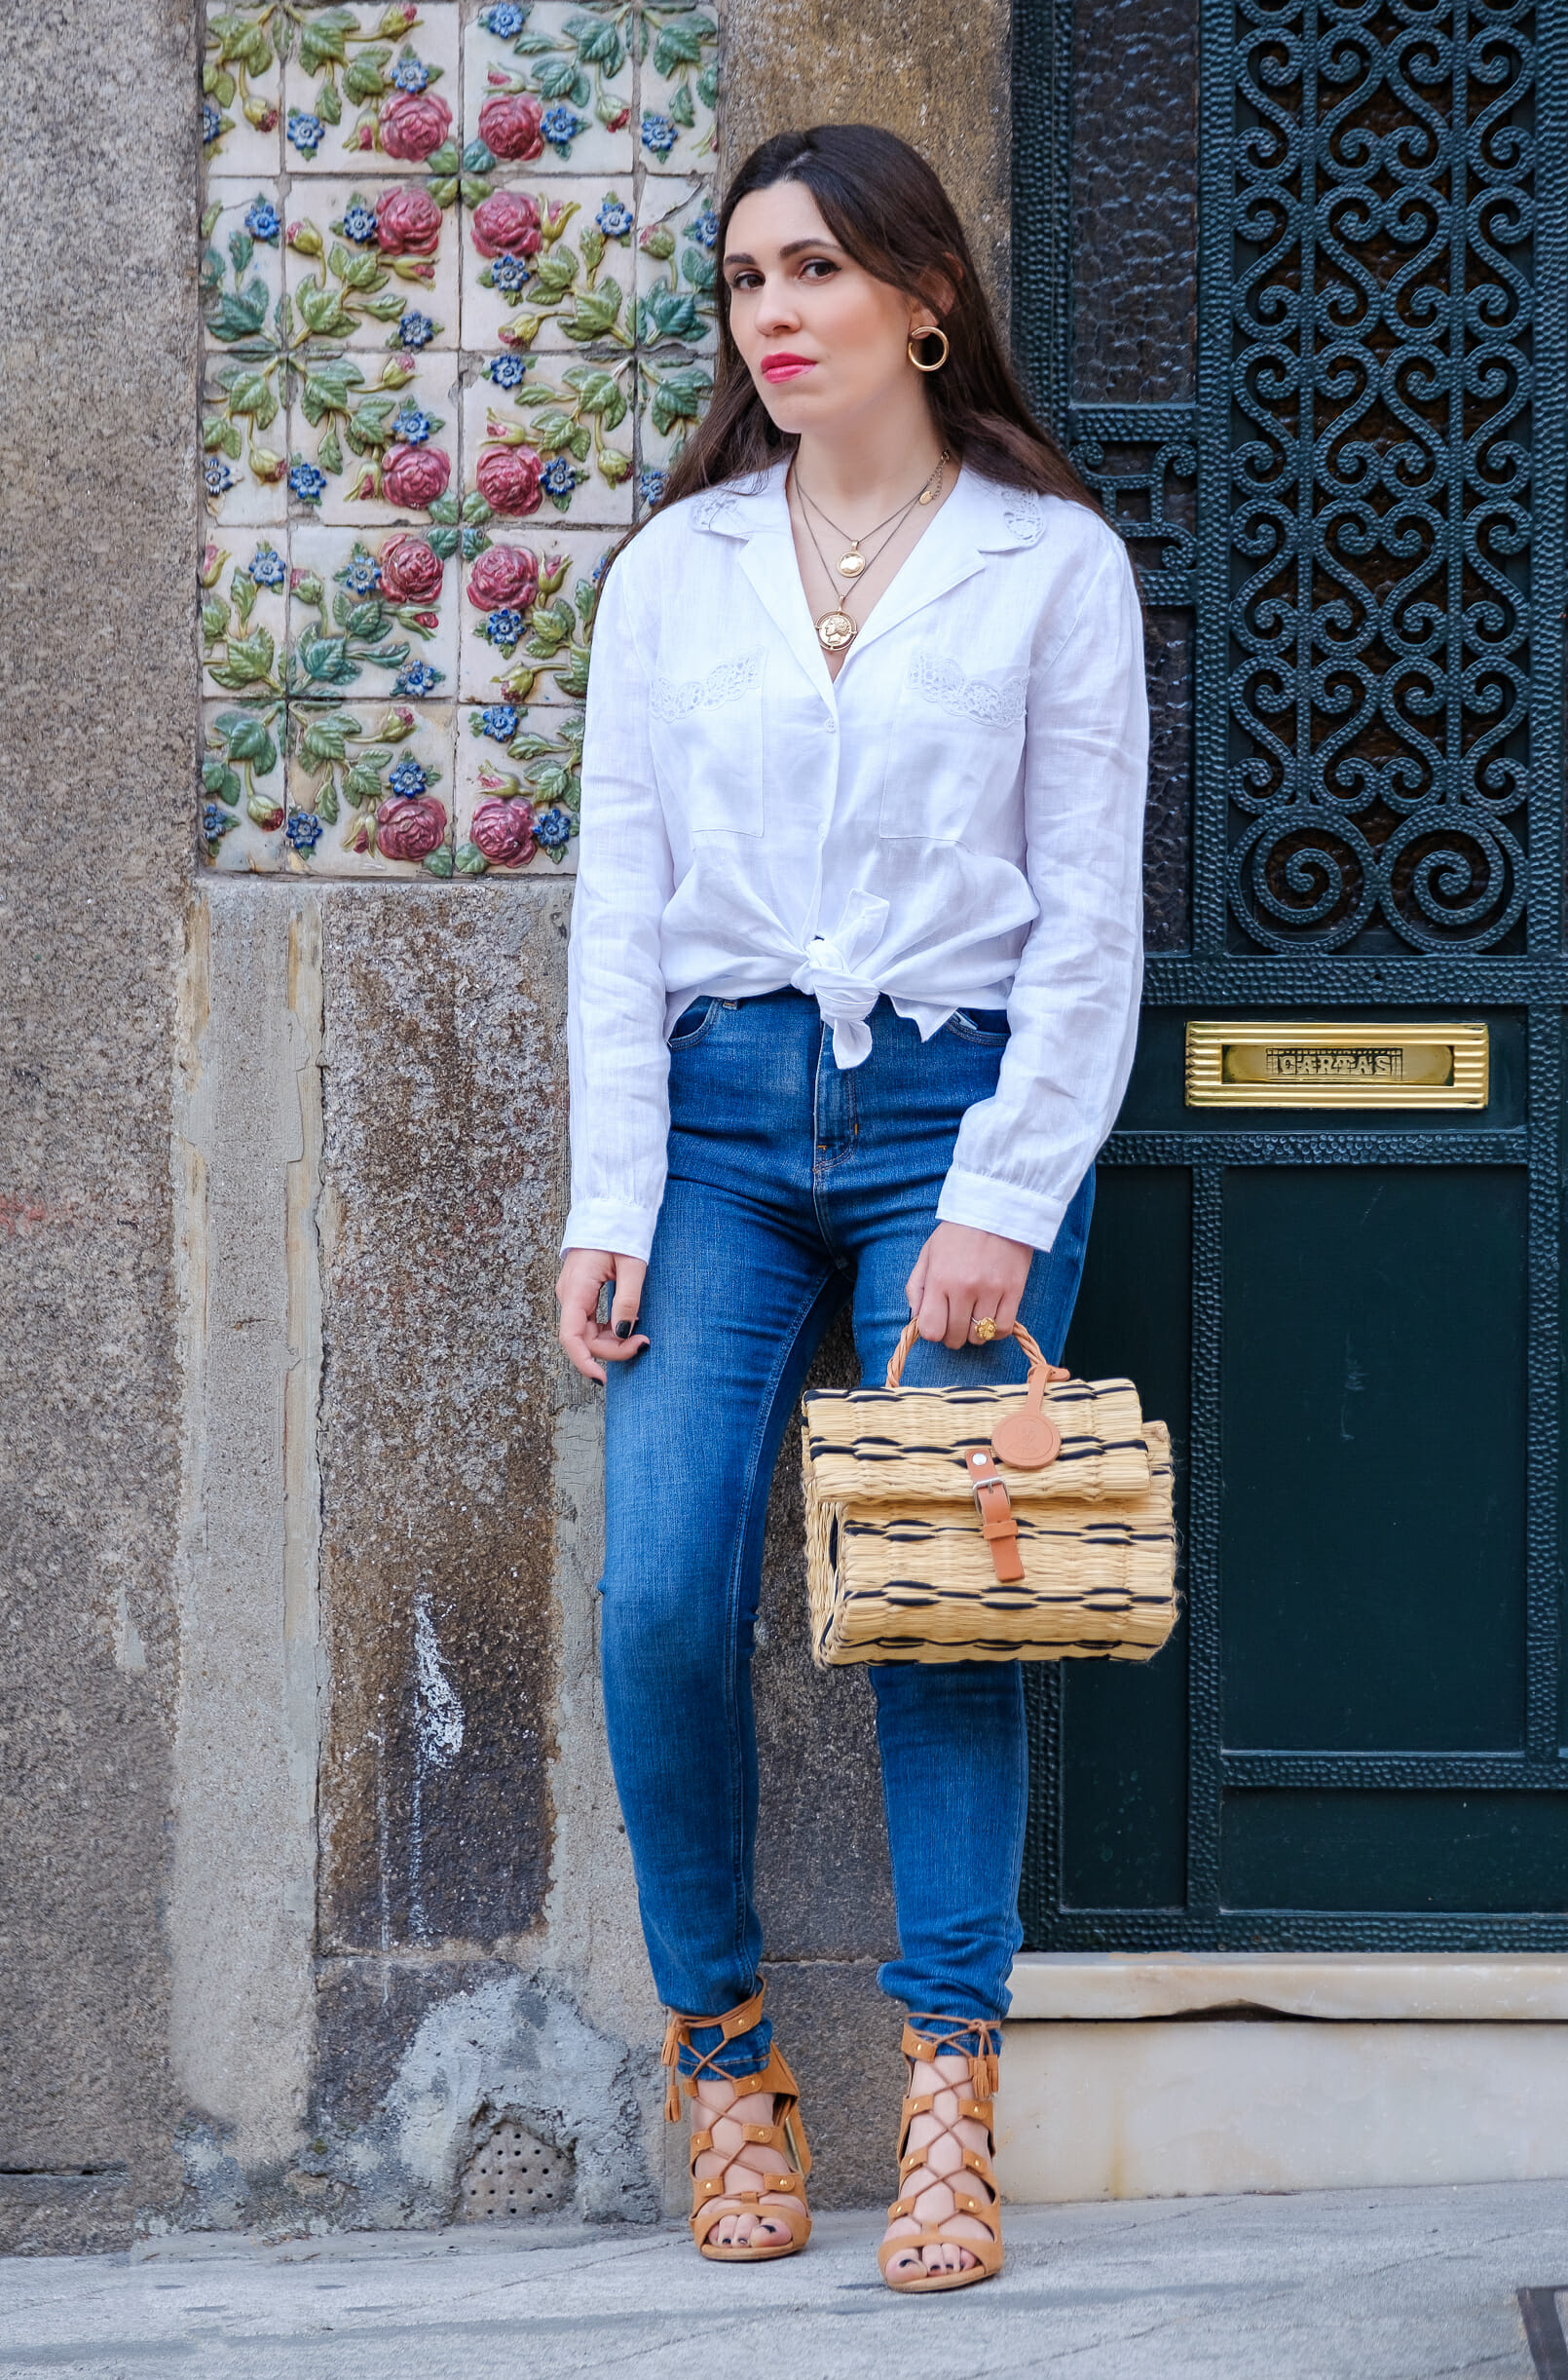 Le Fashionaire white linen embroidered zara shirt denim zara jeans camel suede stradivarius sandals gold coin necklaces mango gold hoop earrings 2770 EN white linen embroidered zara shirt denim zara jeans camel suede stradivarius sandals gold coin necklaces mango gold hoop earrings 2770 EN